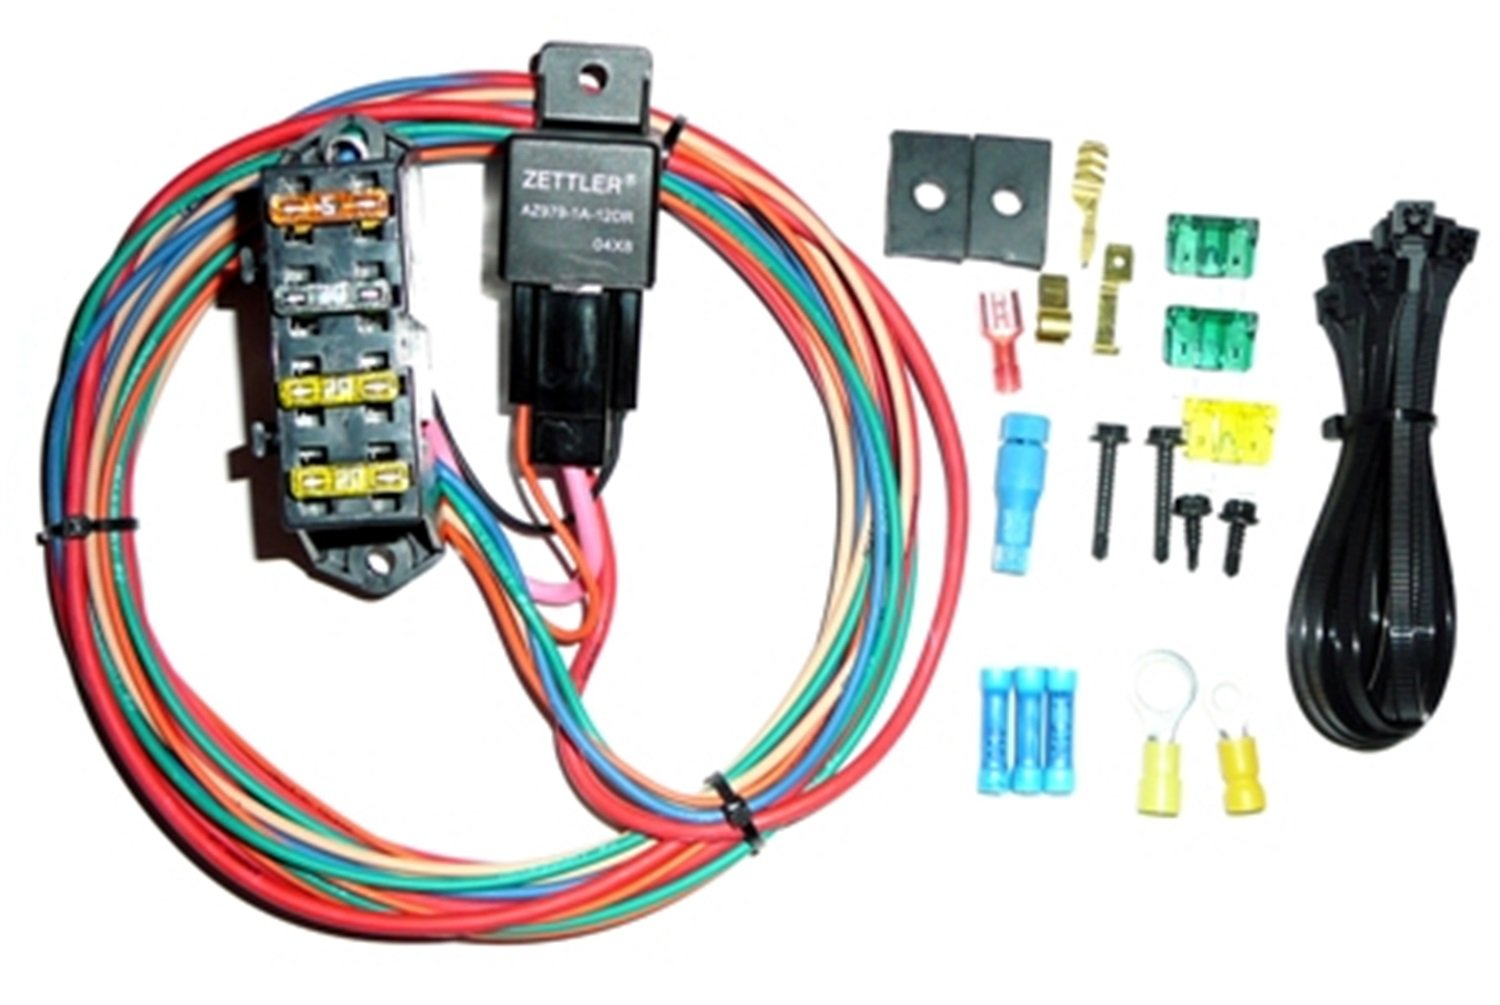 Painless Fuse Box Waterproof Not Lossing Wiring Diagram Todays Rh 7 12 2 Gealeague Today Bussmann Relay And Block